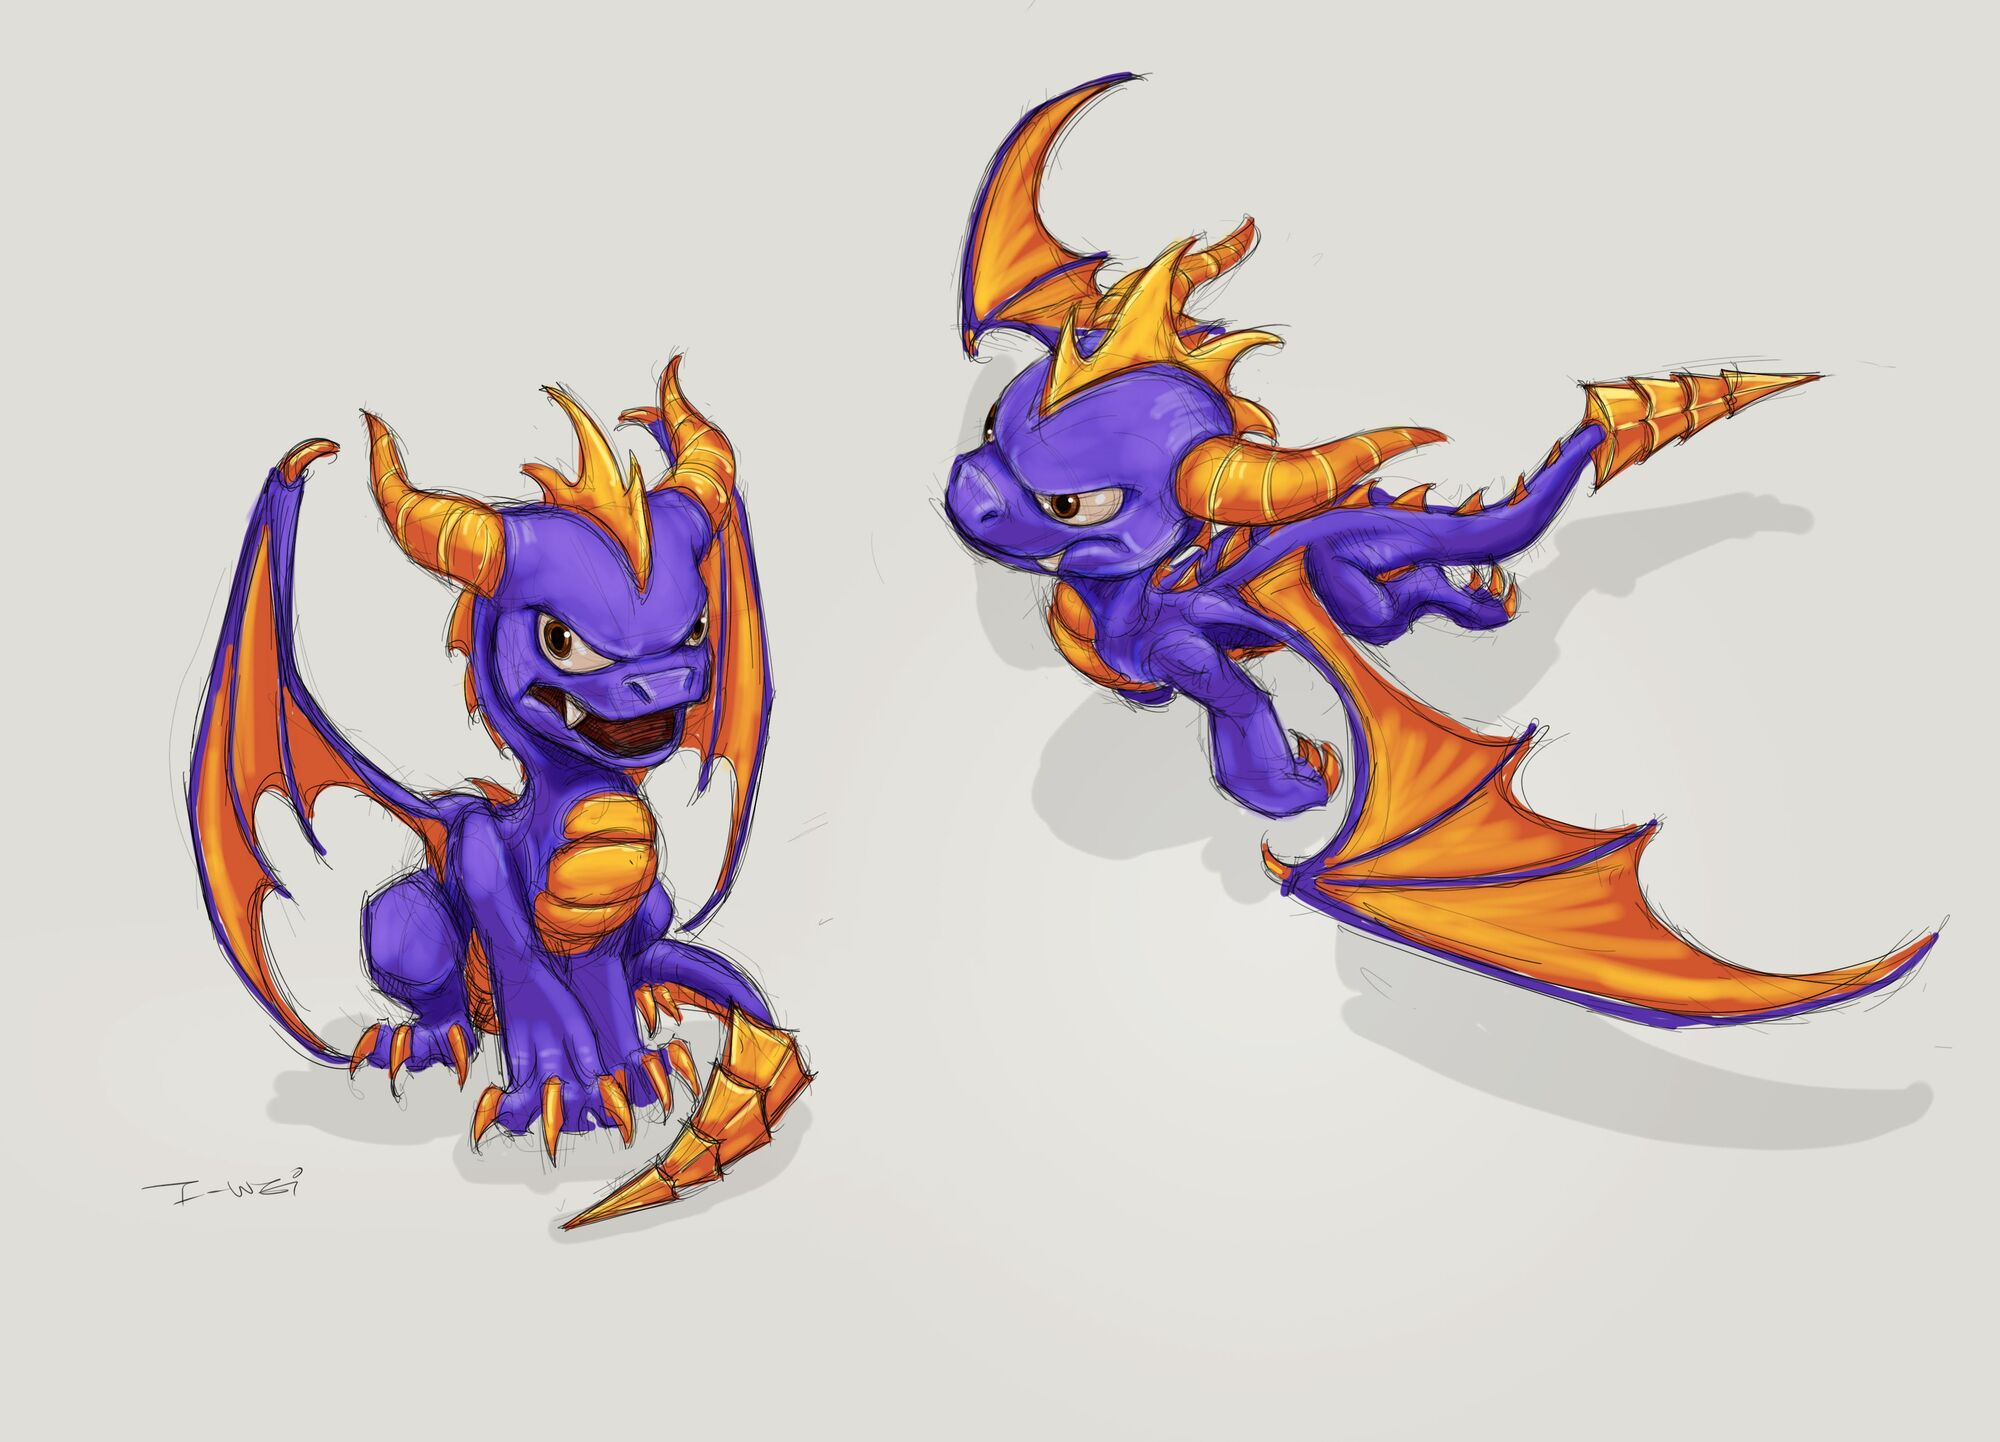 image spyro concept art jpg spyro wiki fandom powered by wikia